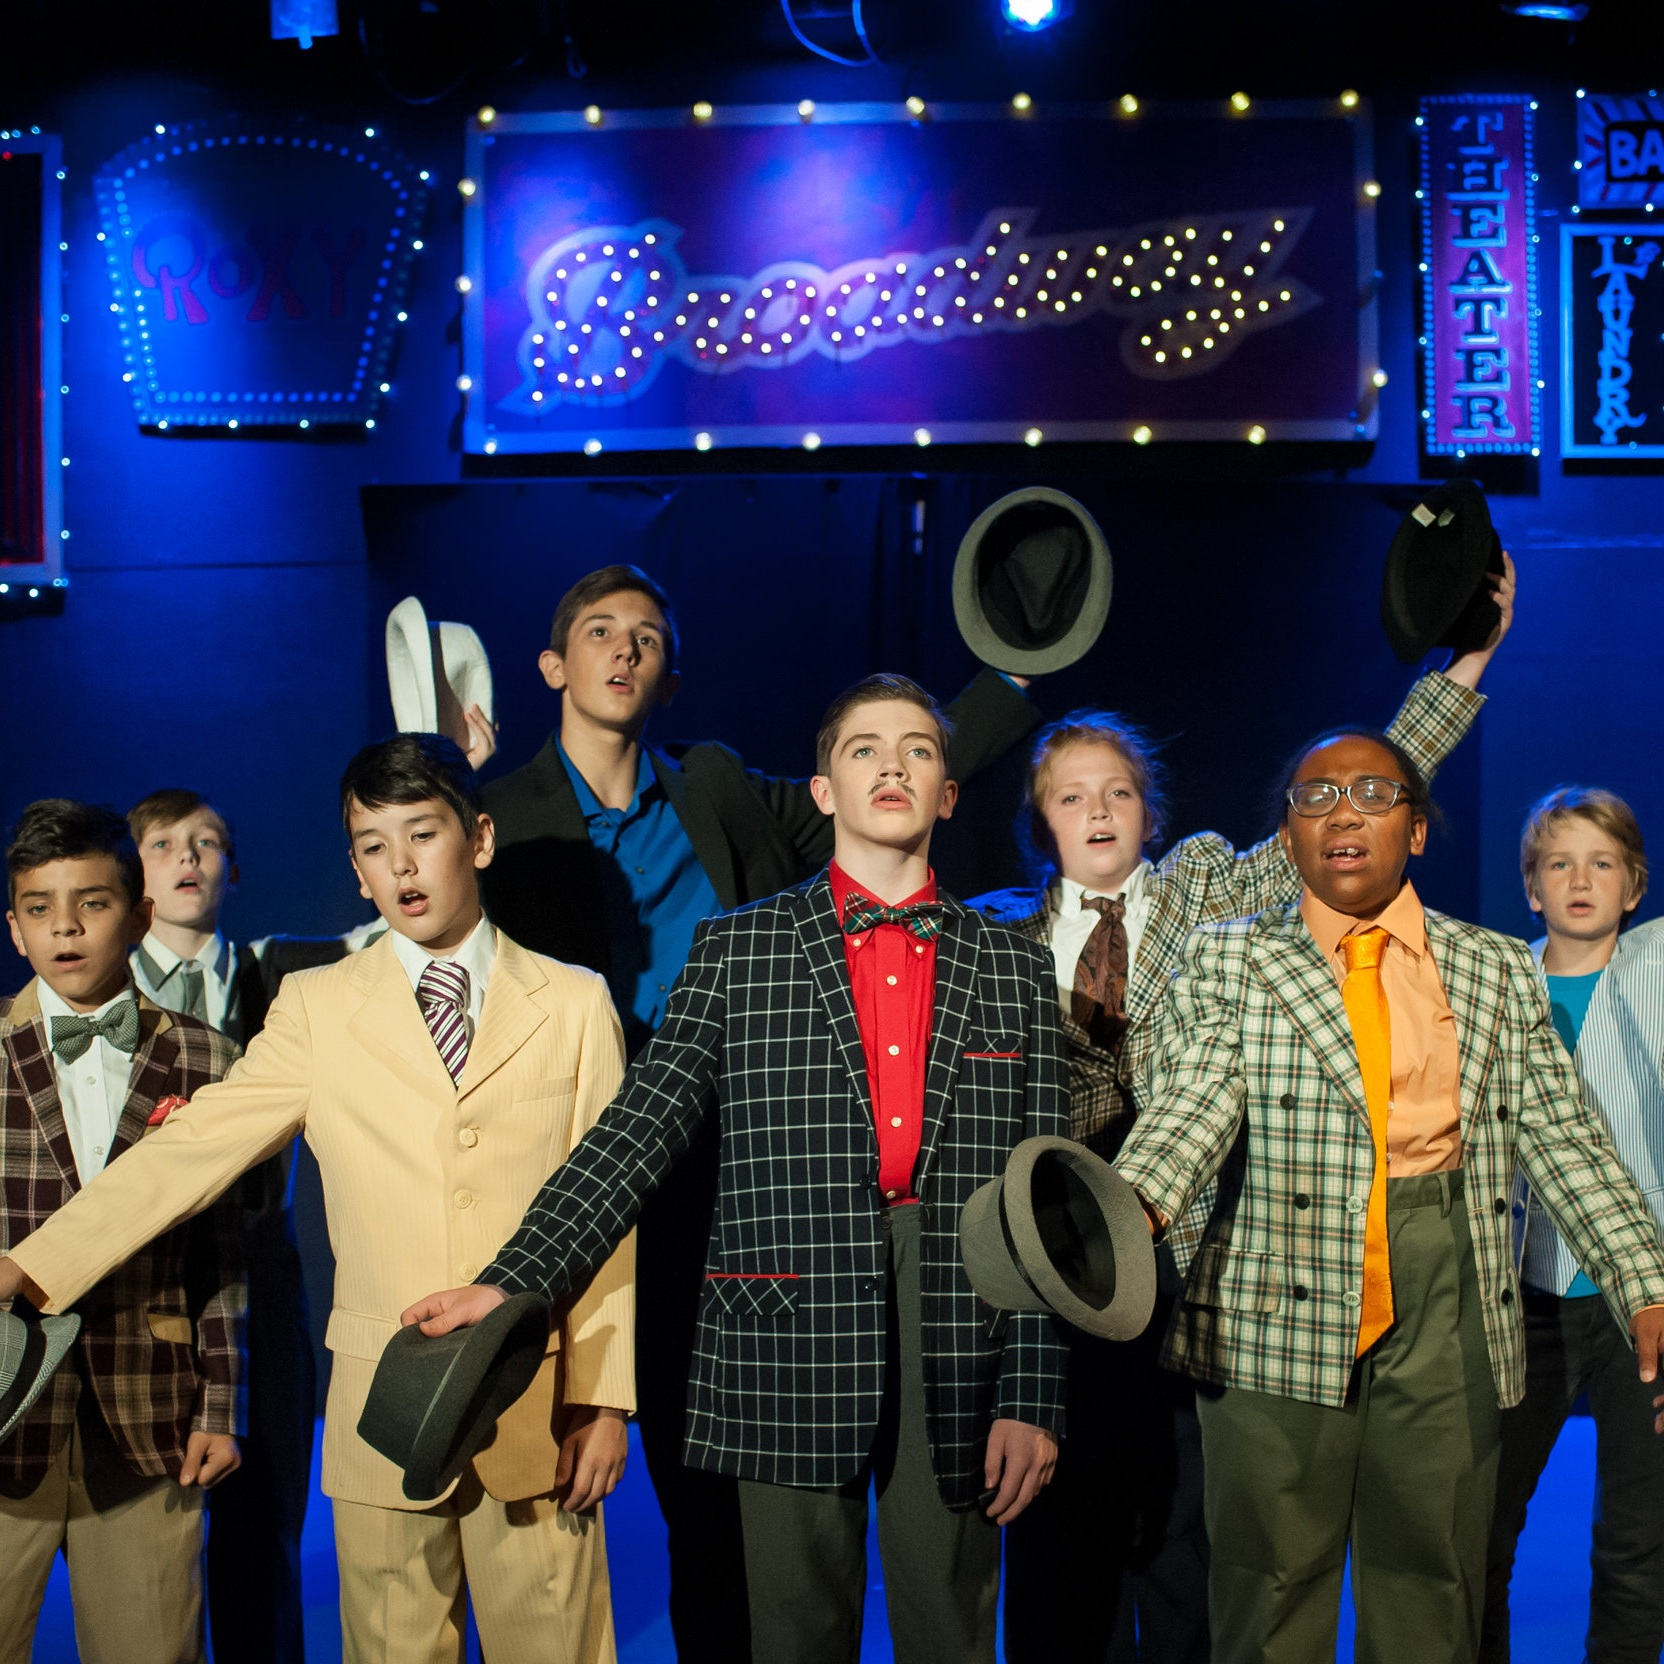 Boys take Broadway   Tuition:  $100   July 8th-12th   10:30-12:30   ages 10+     *SALE* Pick two consecutive camps and stay for lunch in between. Use coupon code PICK-TWO to receive $40 off your second camp! Can be paired with Grease Musical Review.     Description:  We are taking all of the best highlights from Guys and Dolls, West Side Story, Newsies, and more! Join us for a week of theatre with the boyz!